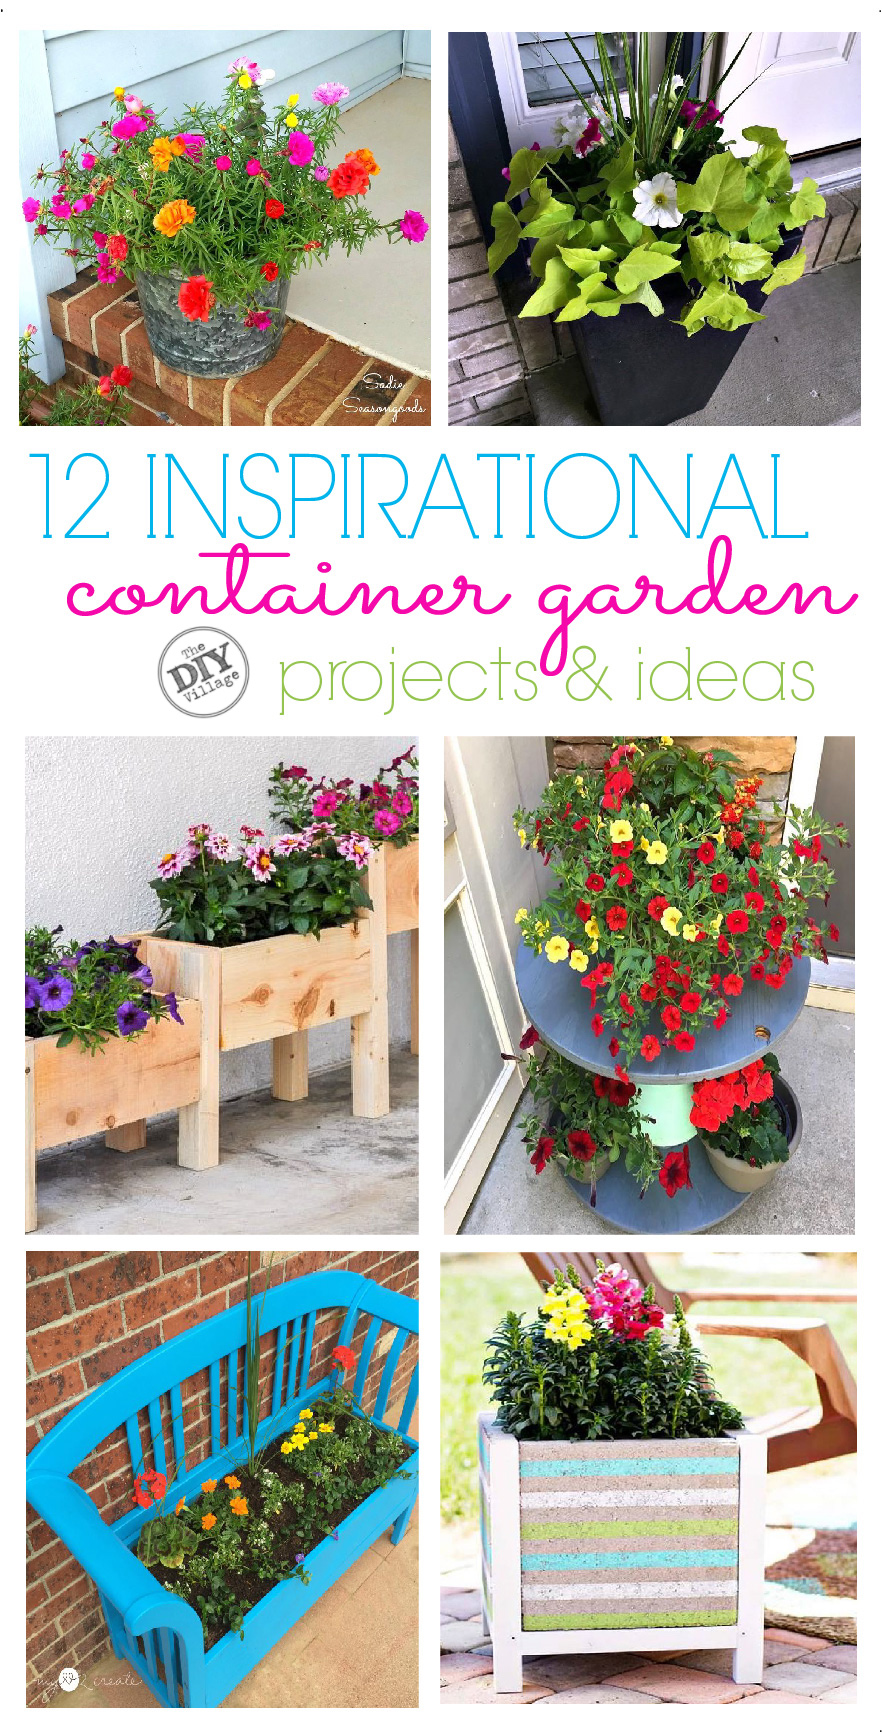 12 inspirational flowering container garden projects and ideas.